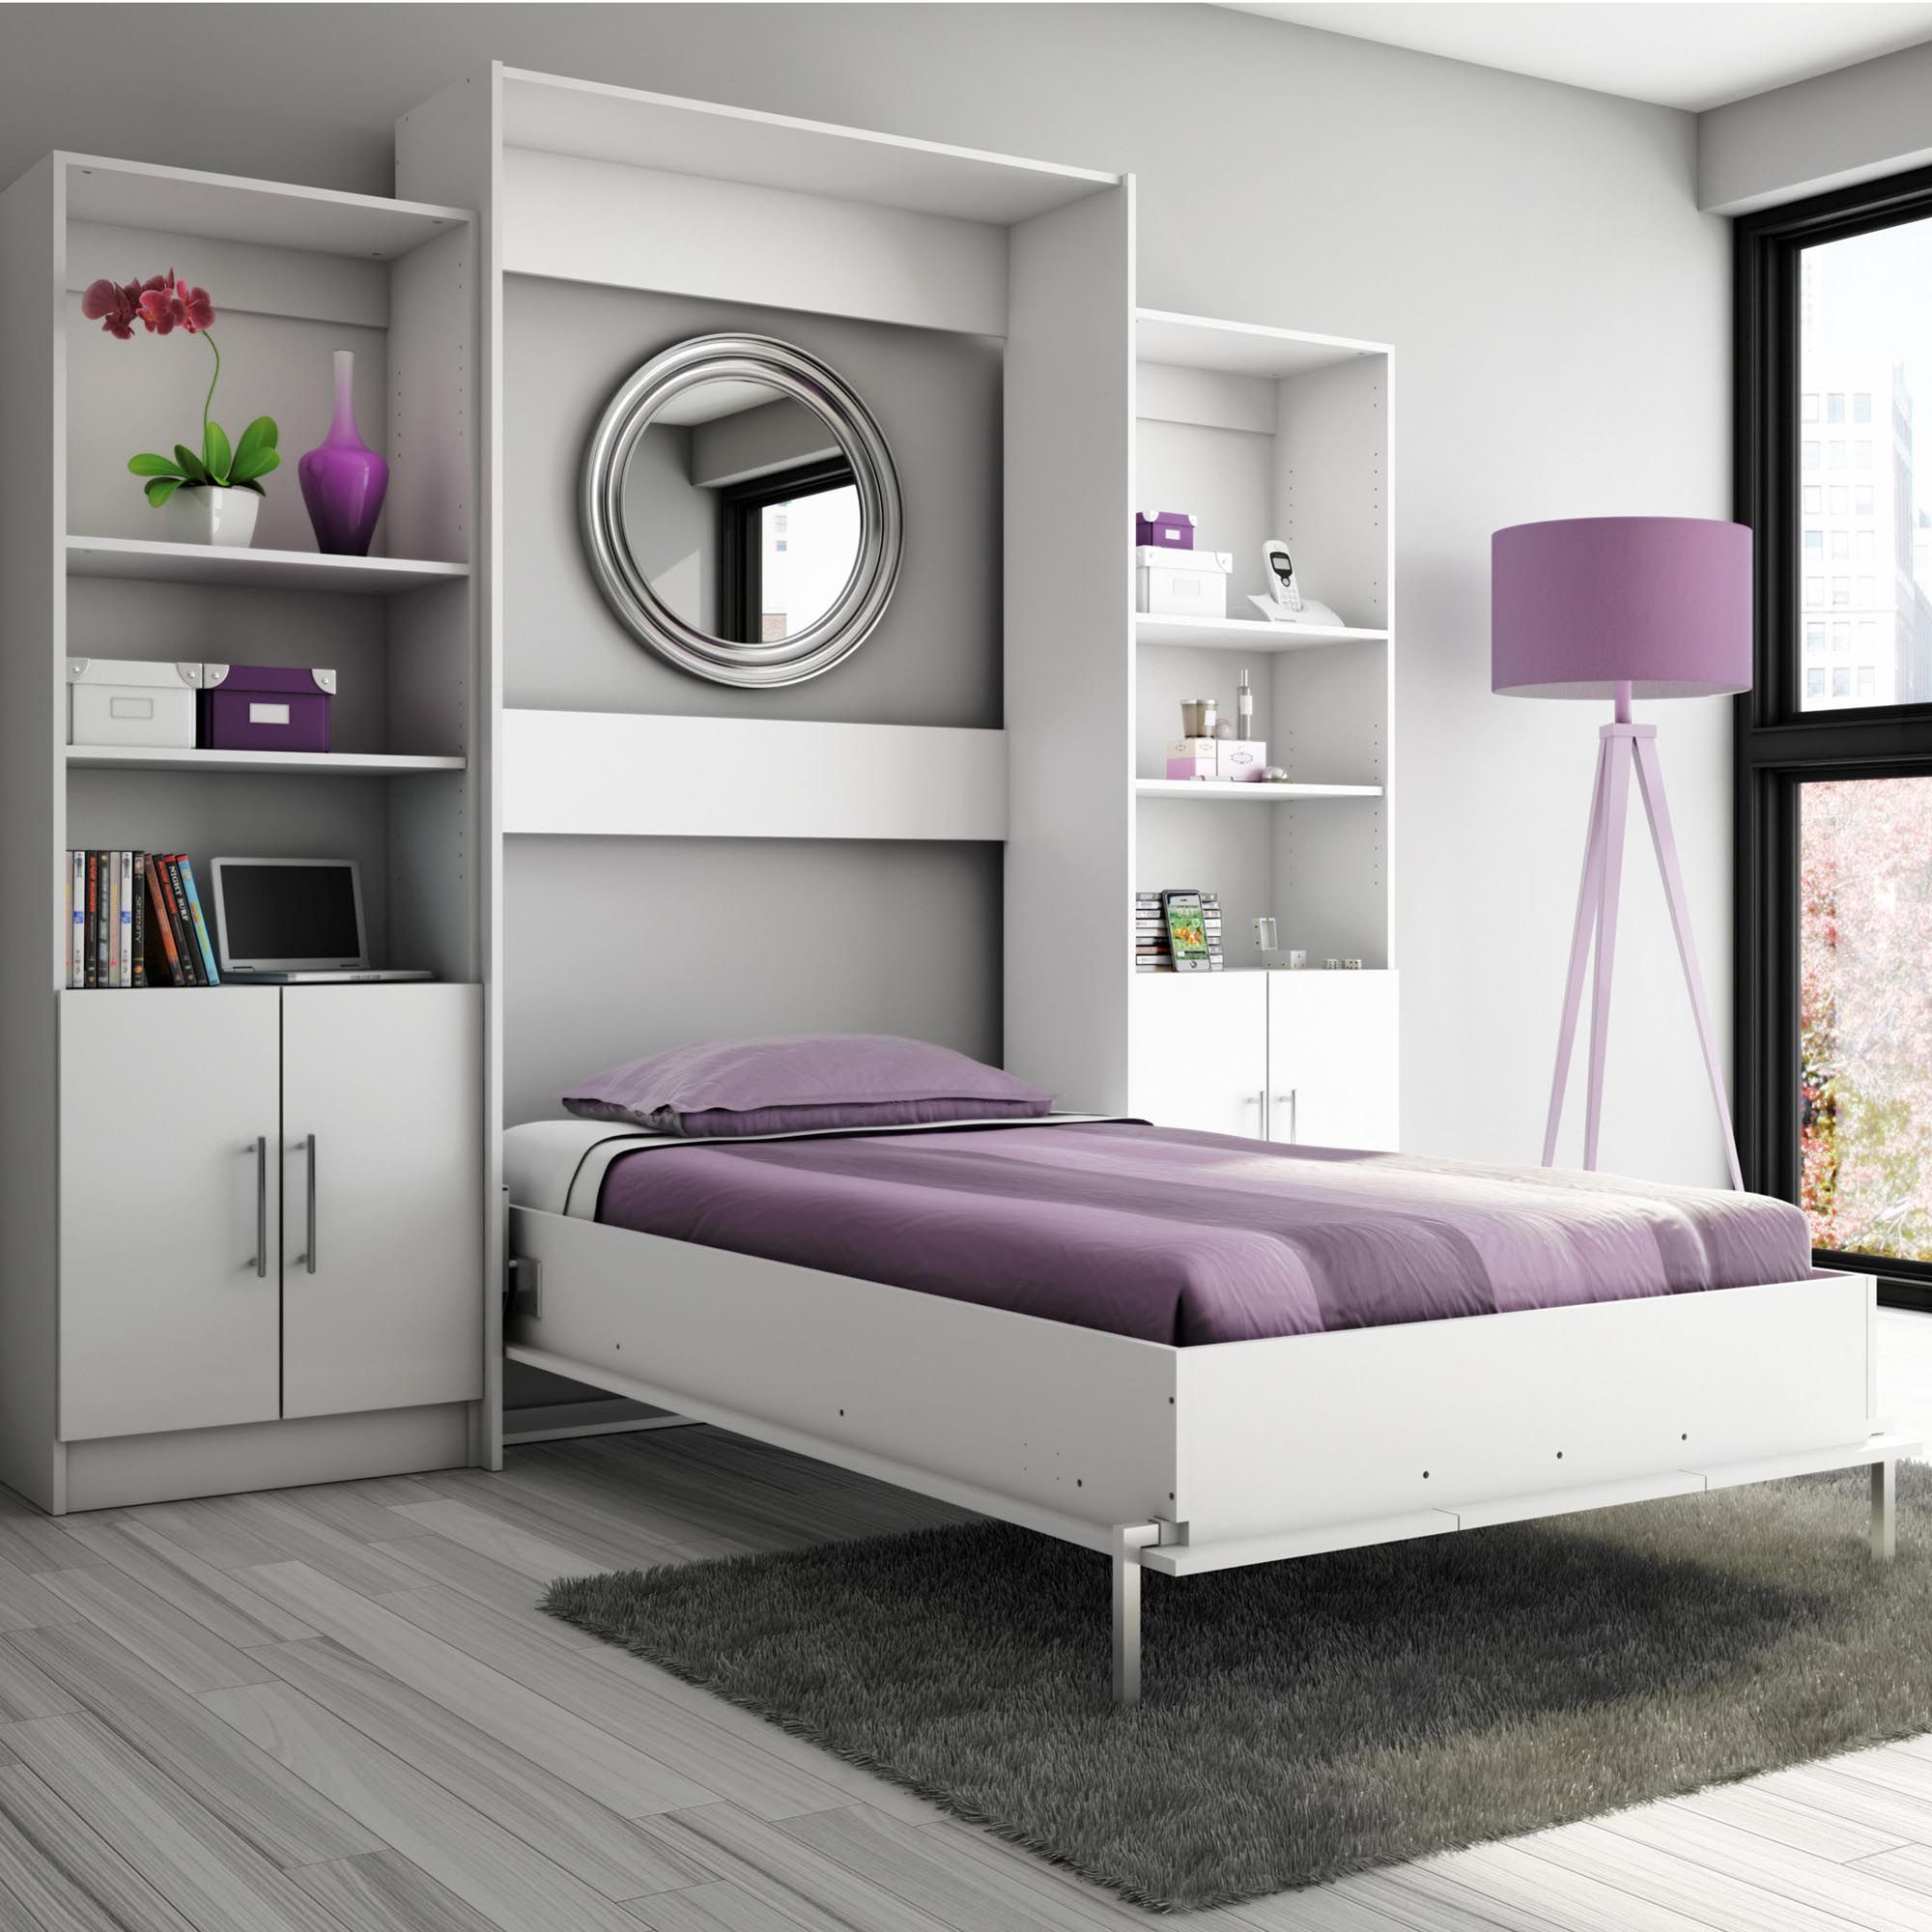 Wall Bed Ikea Make Your Own Murphy Bed Ikea Home Pinterest Wall